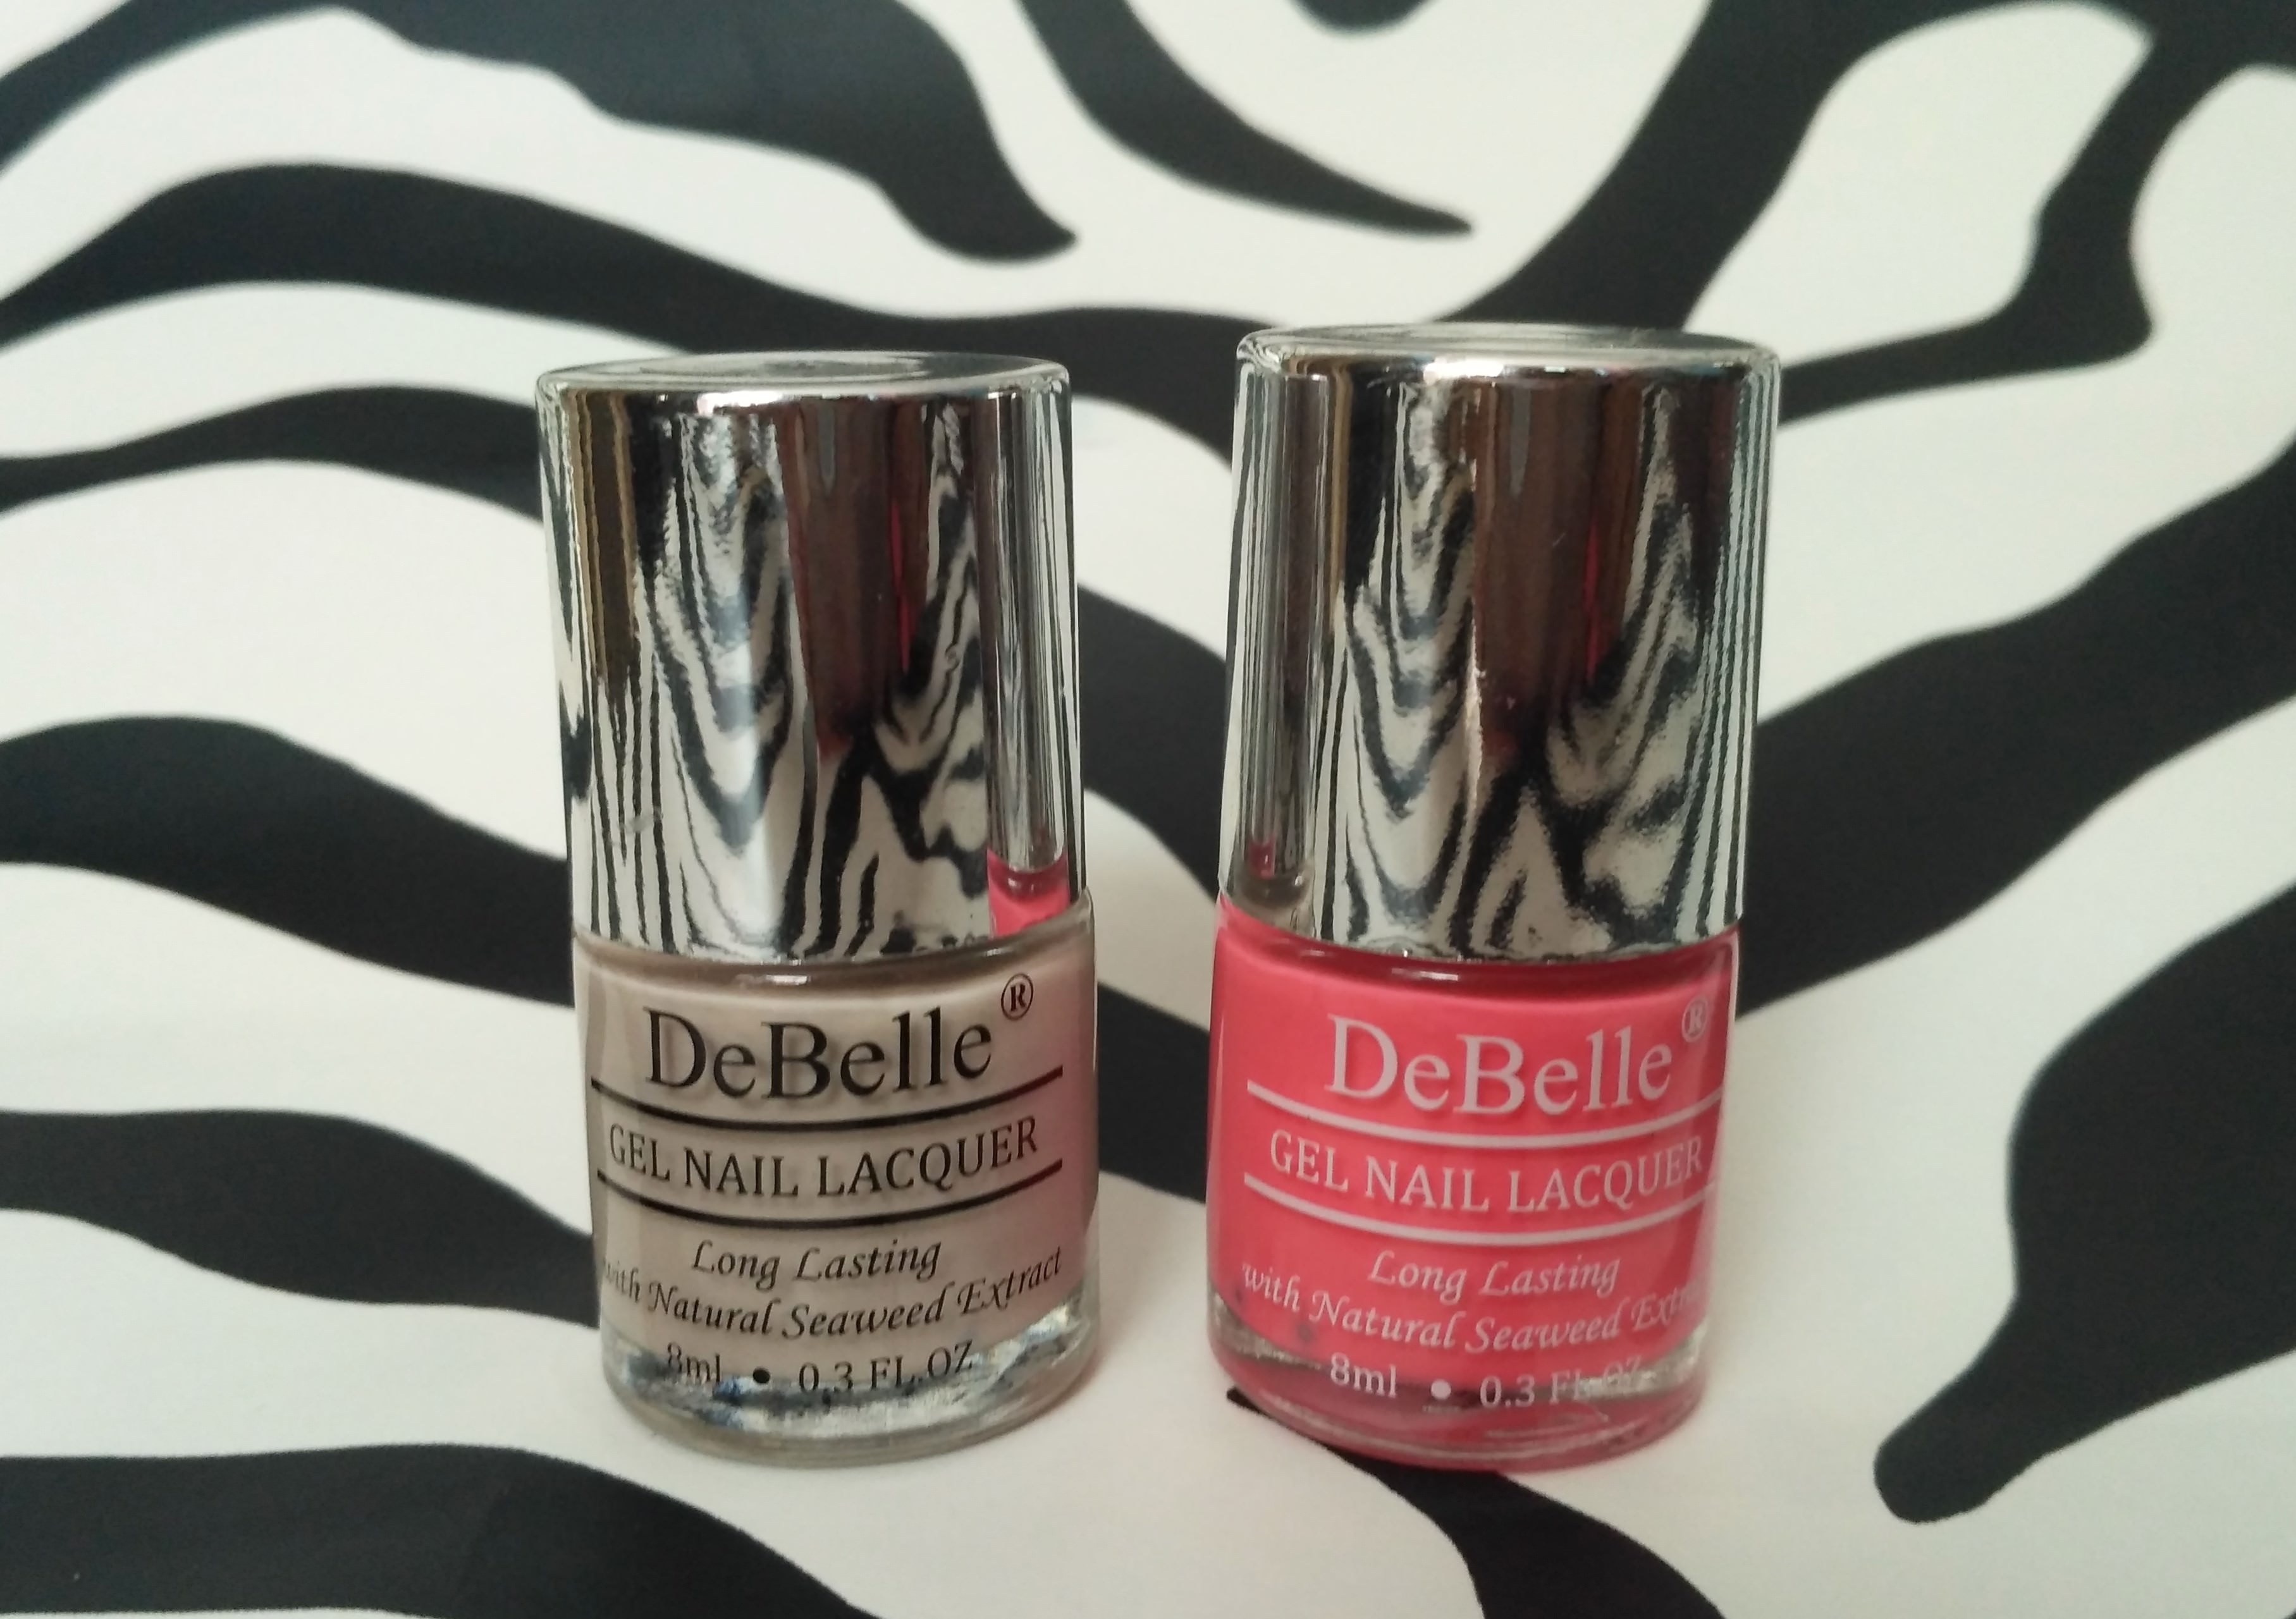 debelle gel nail lacquer review